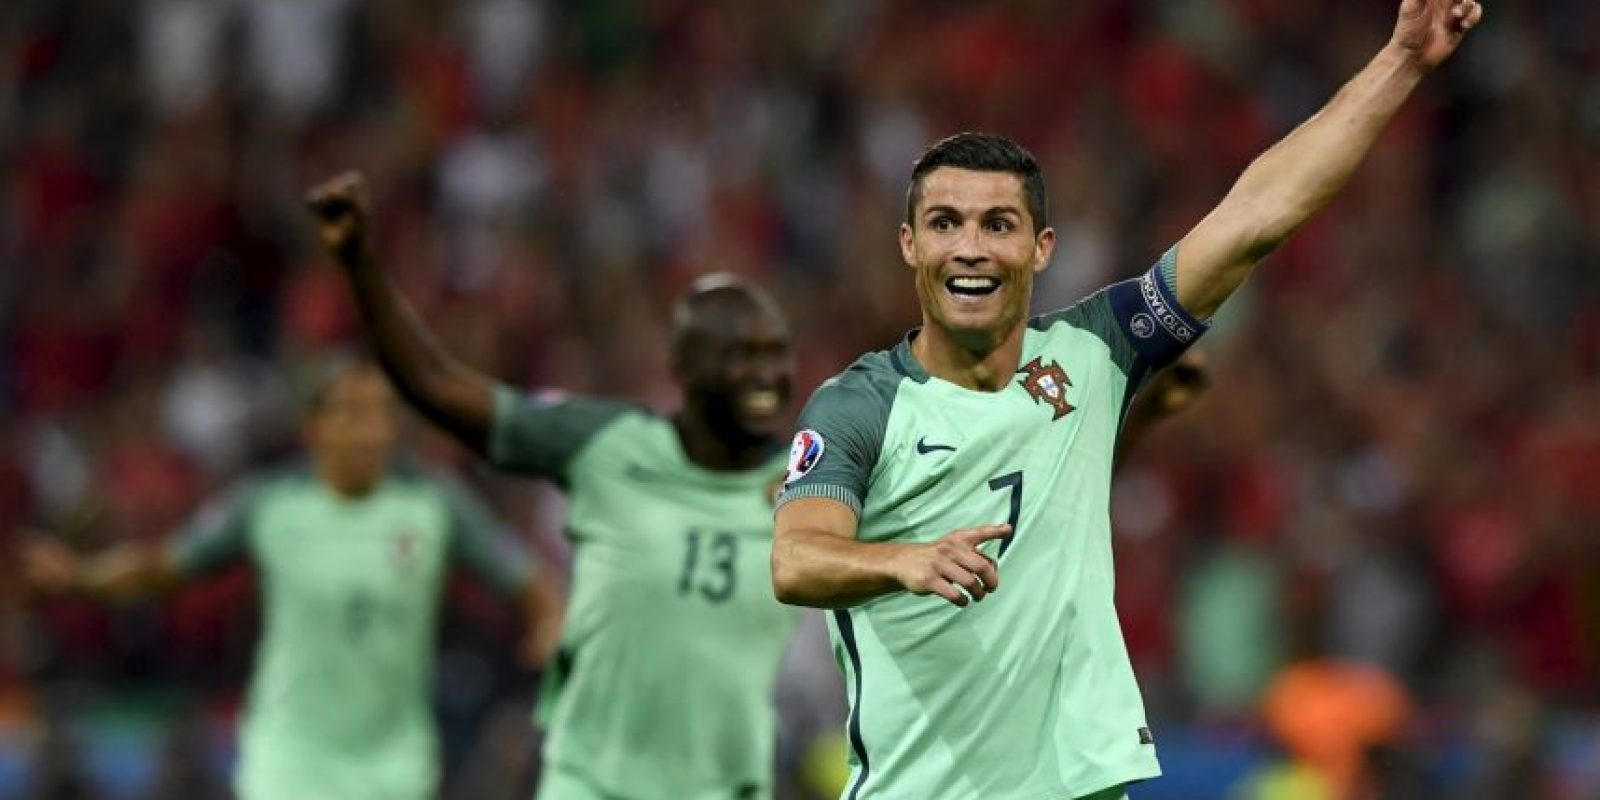 Portugal avanzó a semifinales tras vencer a Gales Foto: Getty Images